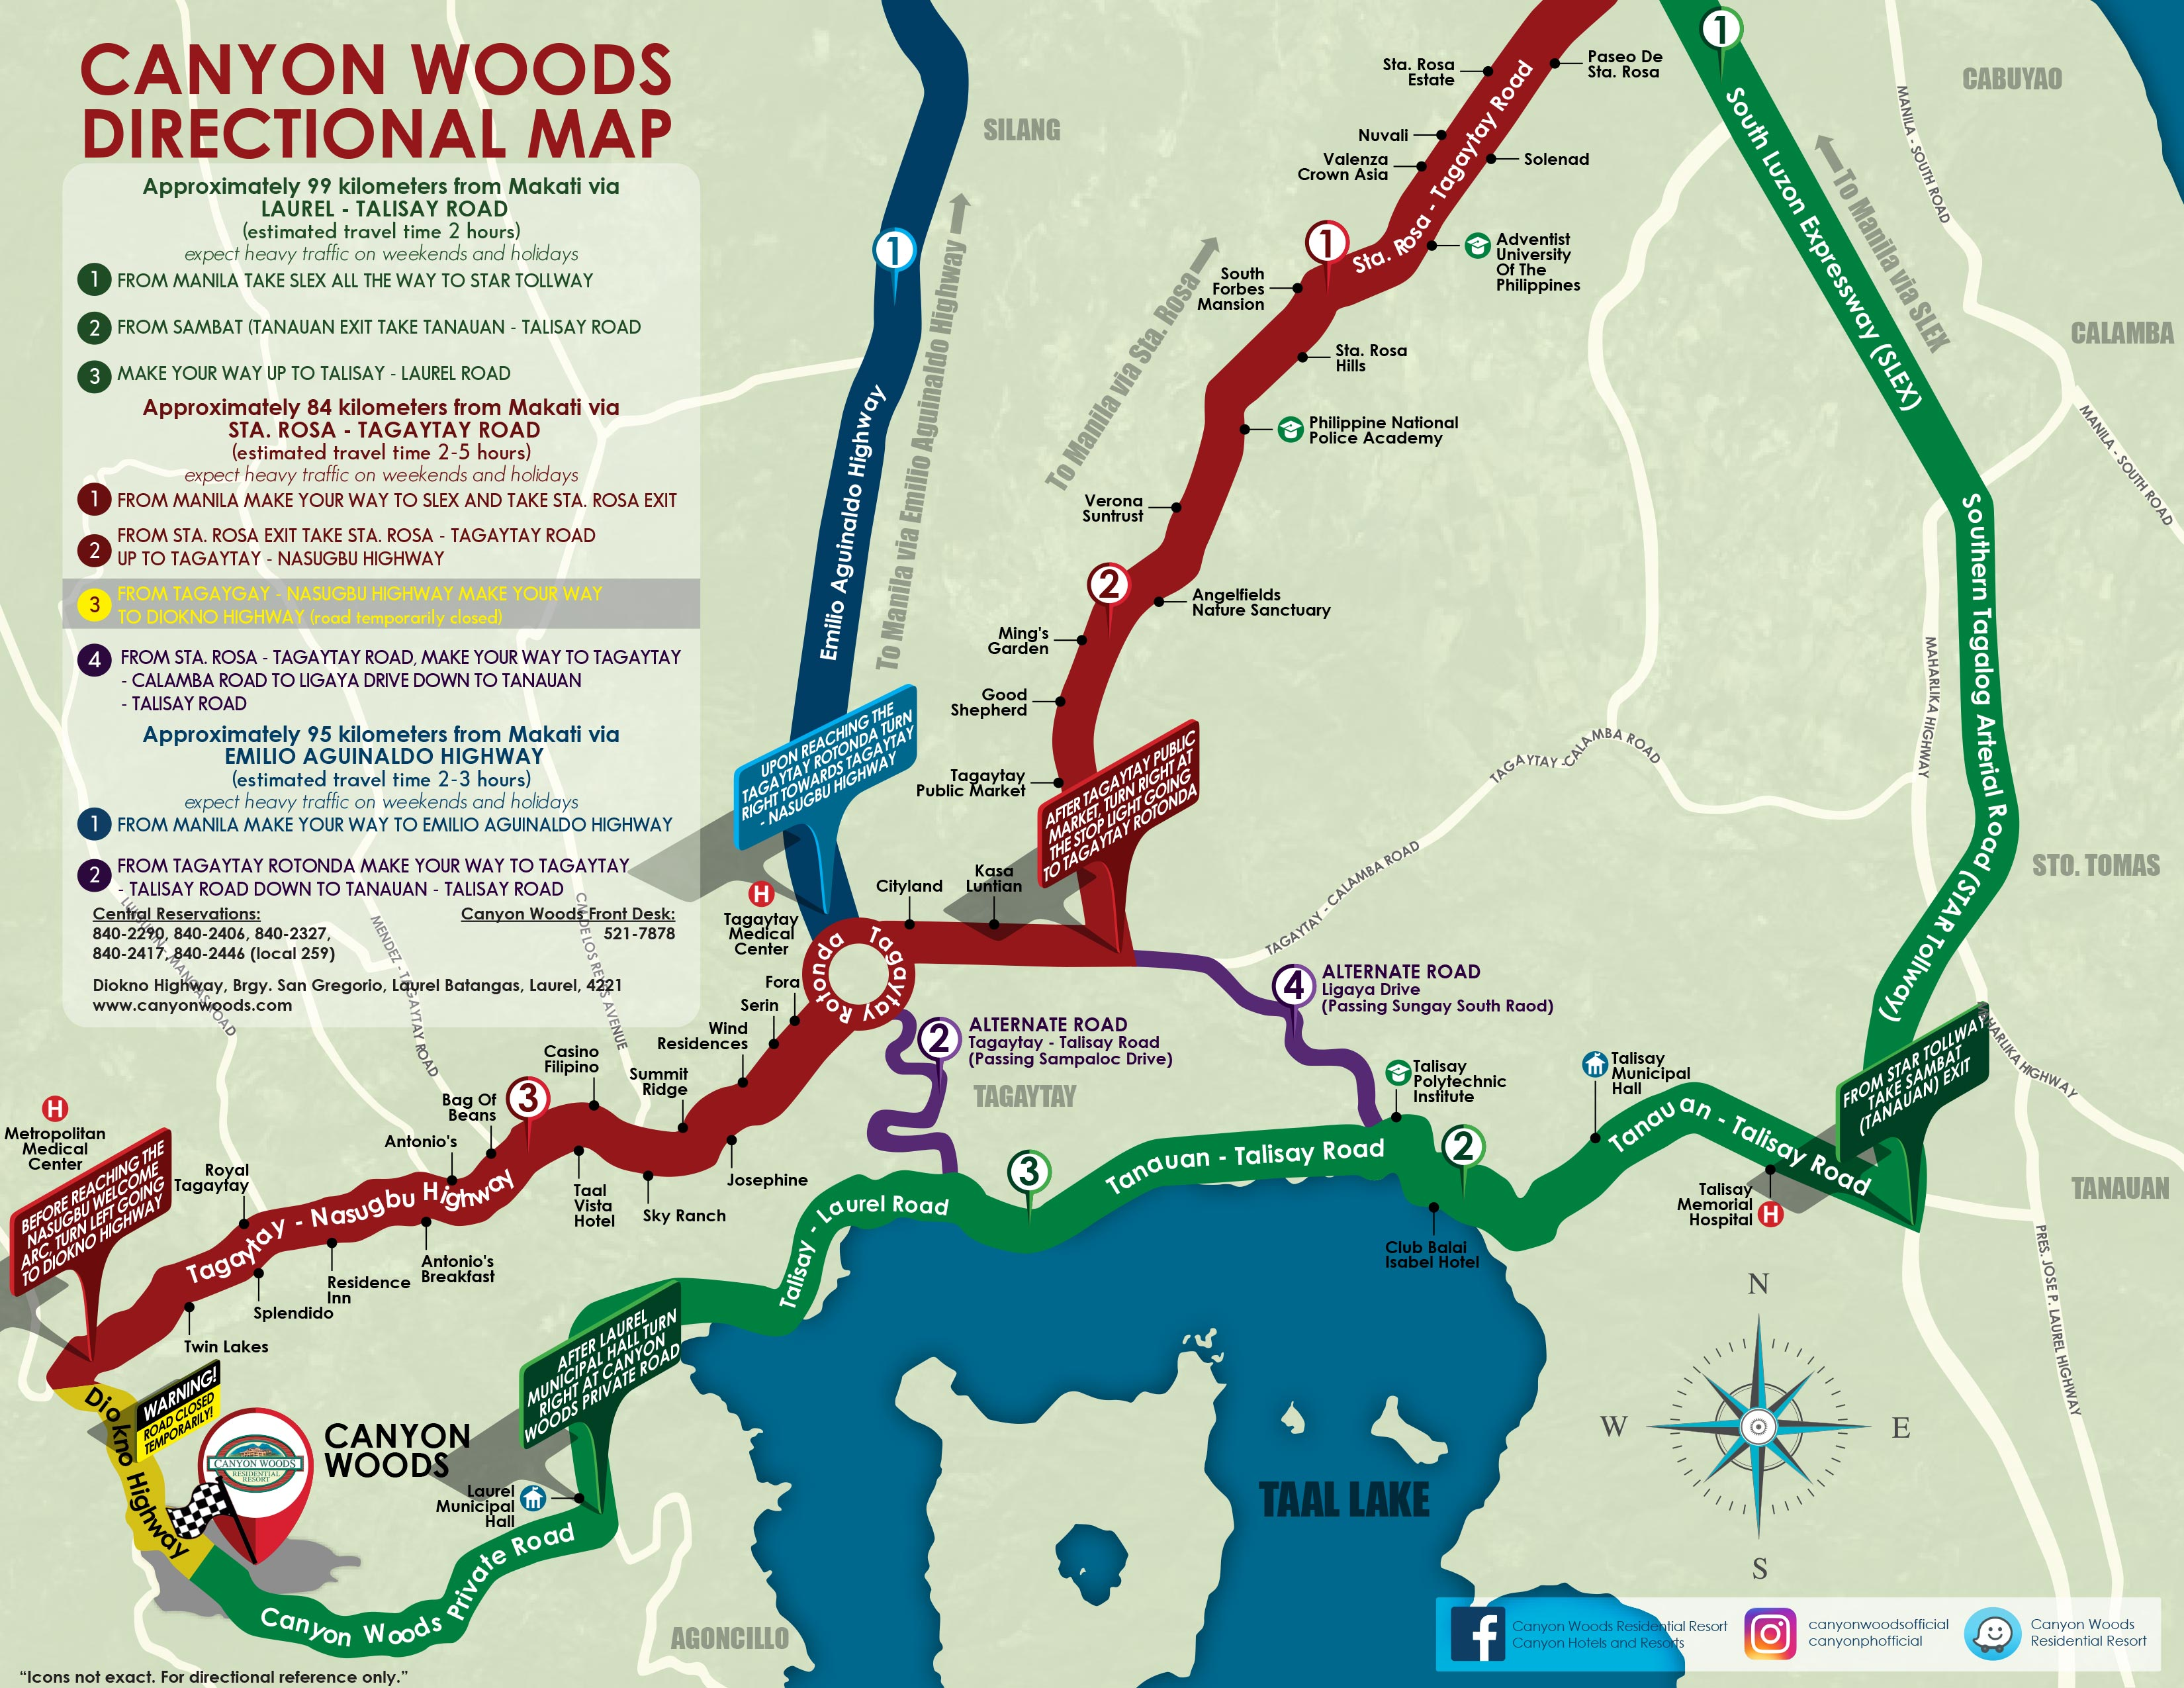 Directional Map - Canyon Woods on